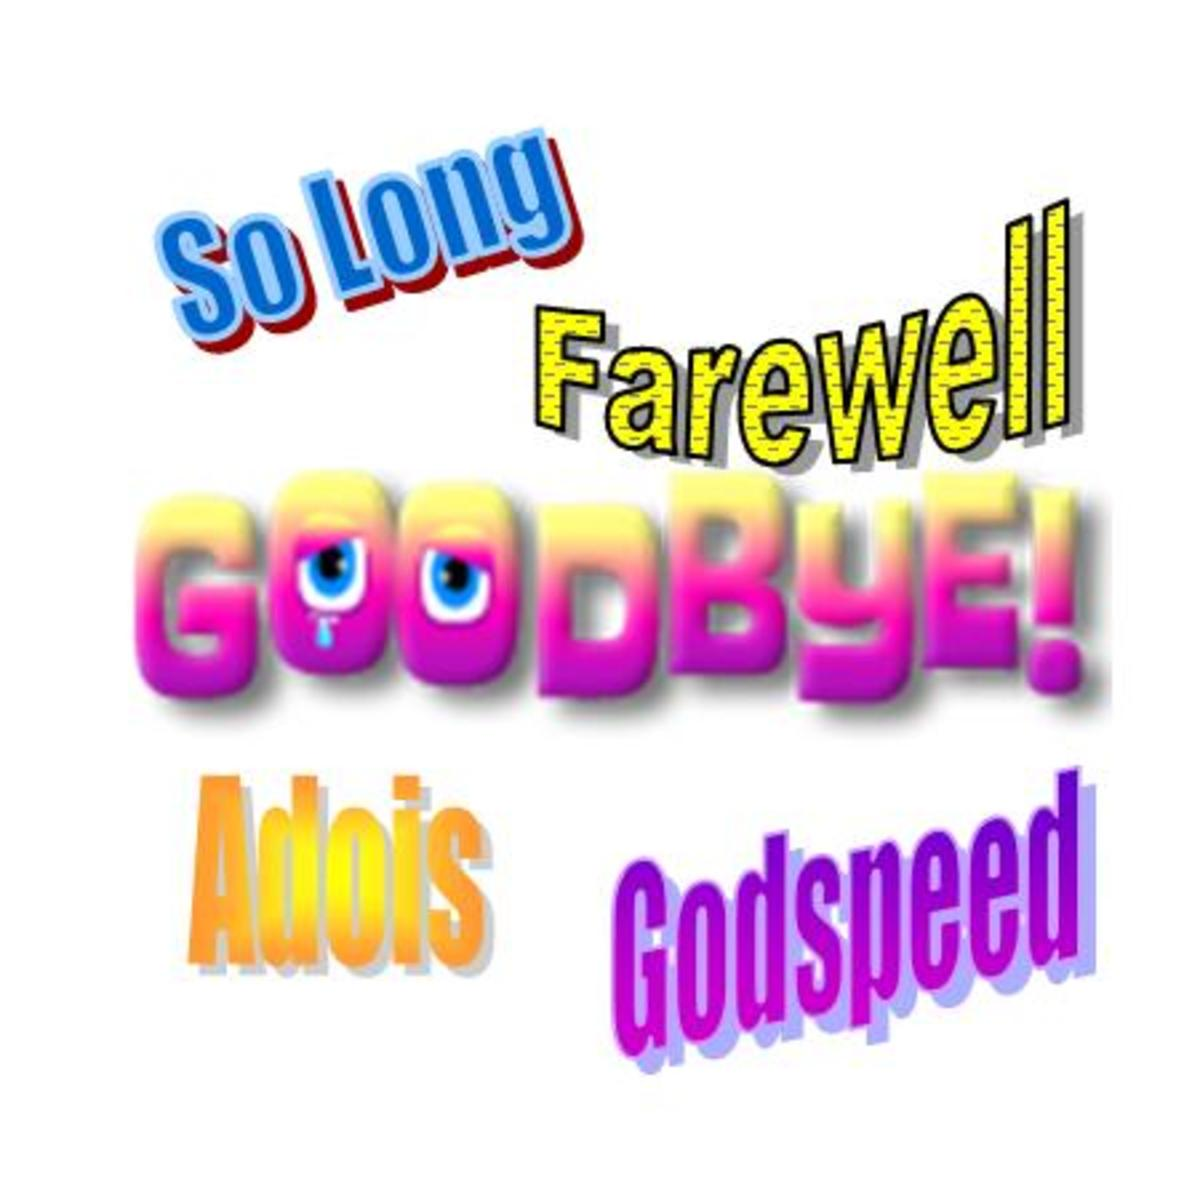 Saying Goodbye to Co-Workers Quotes